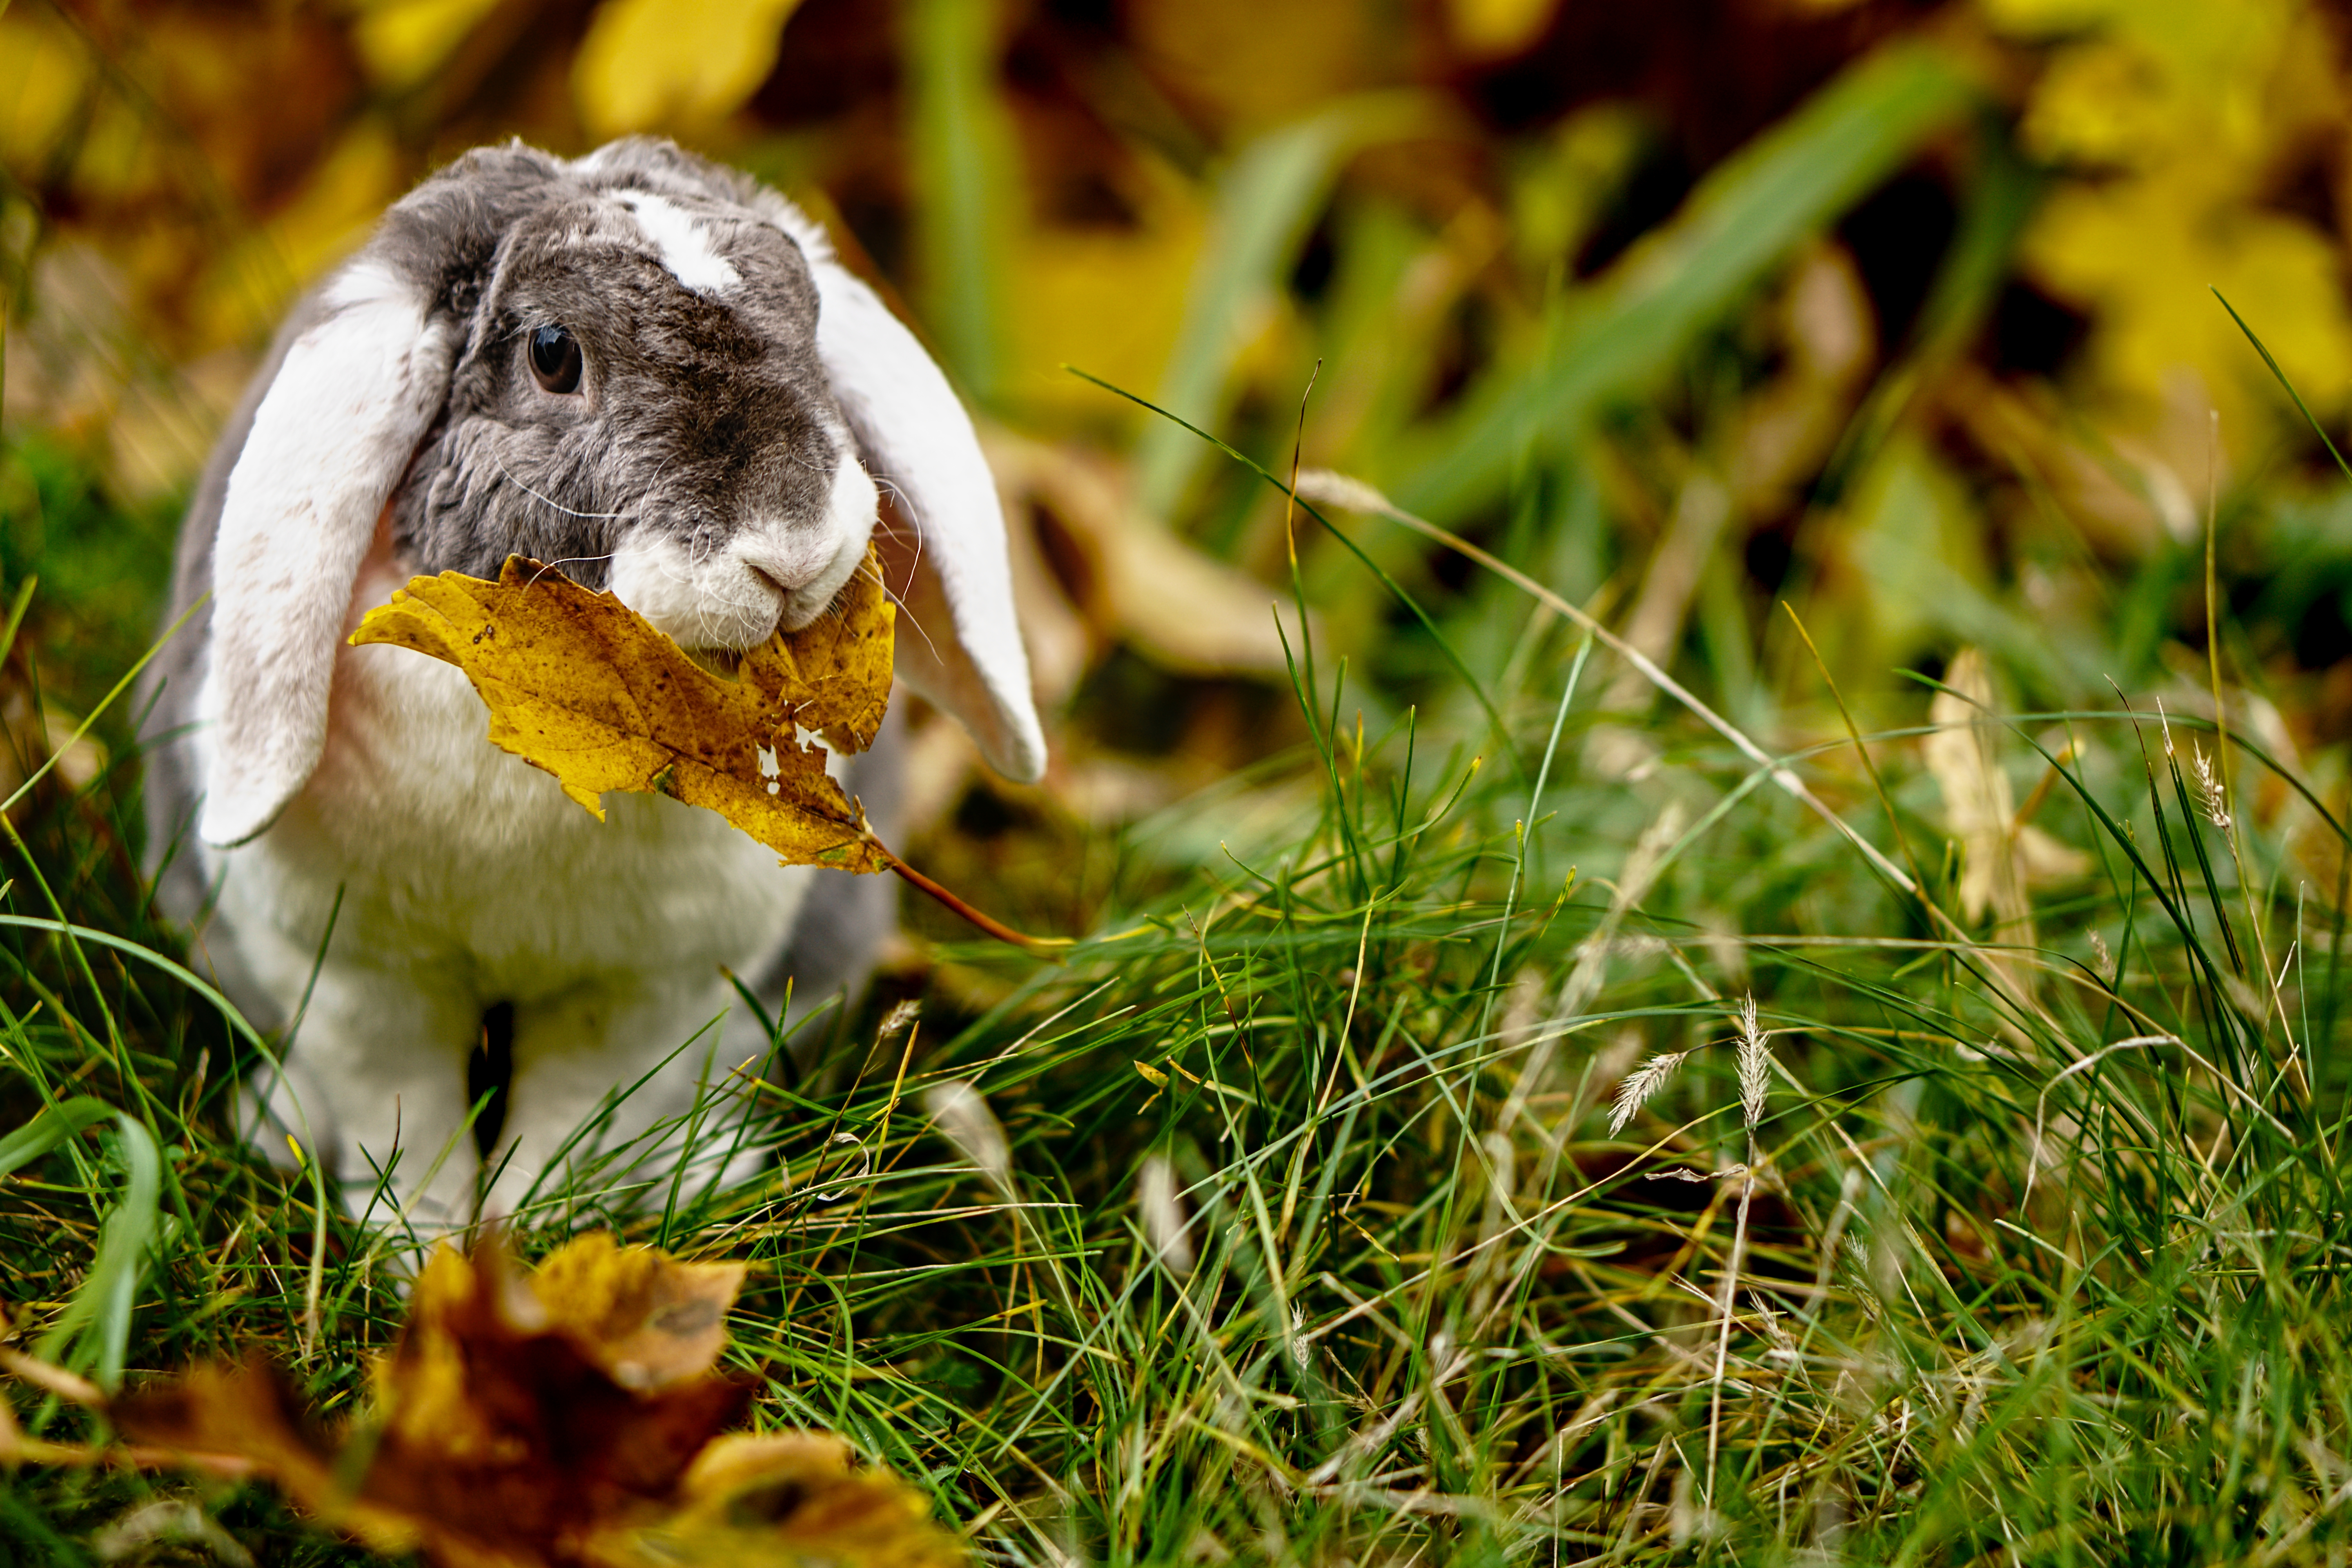 122787 download wallpaper Animals, Rabbit, Leaflet, Grass, Nice, Sweetheart, Animal screensavers and pictures for free